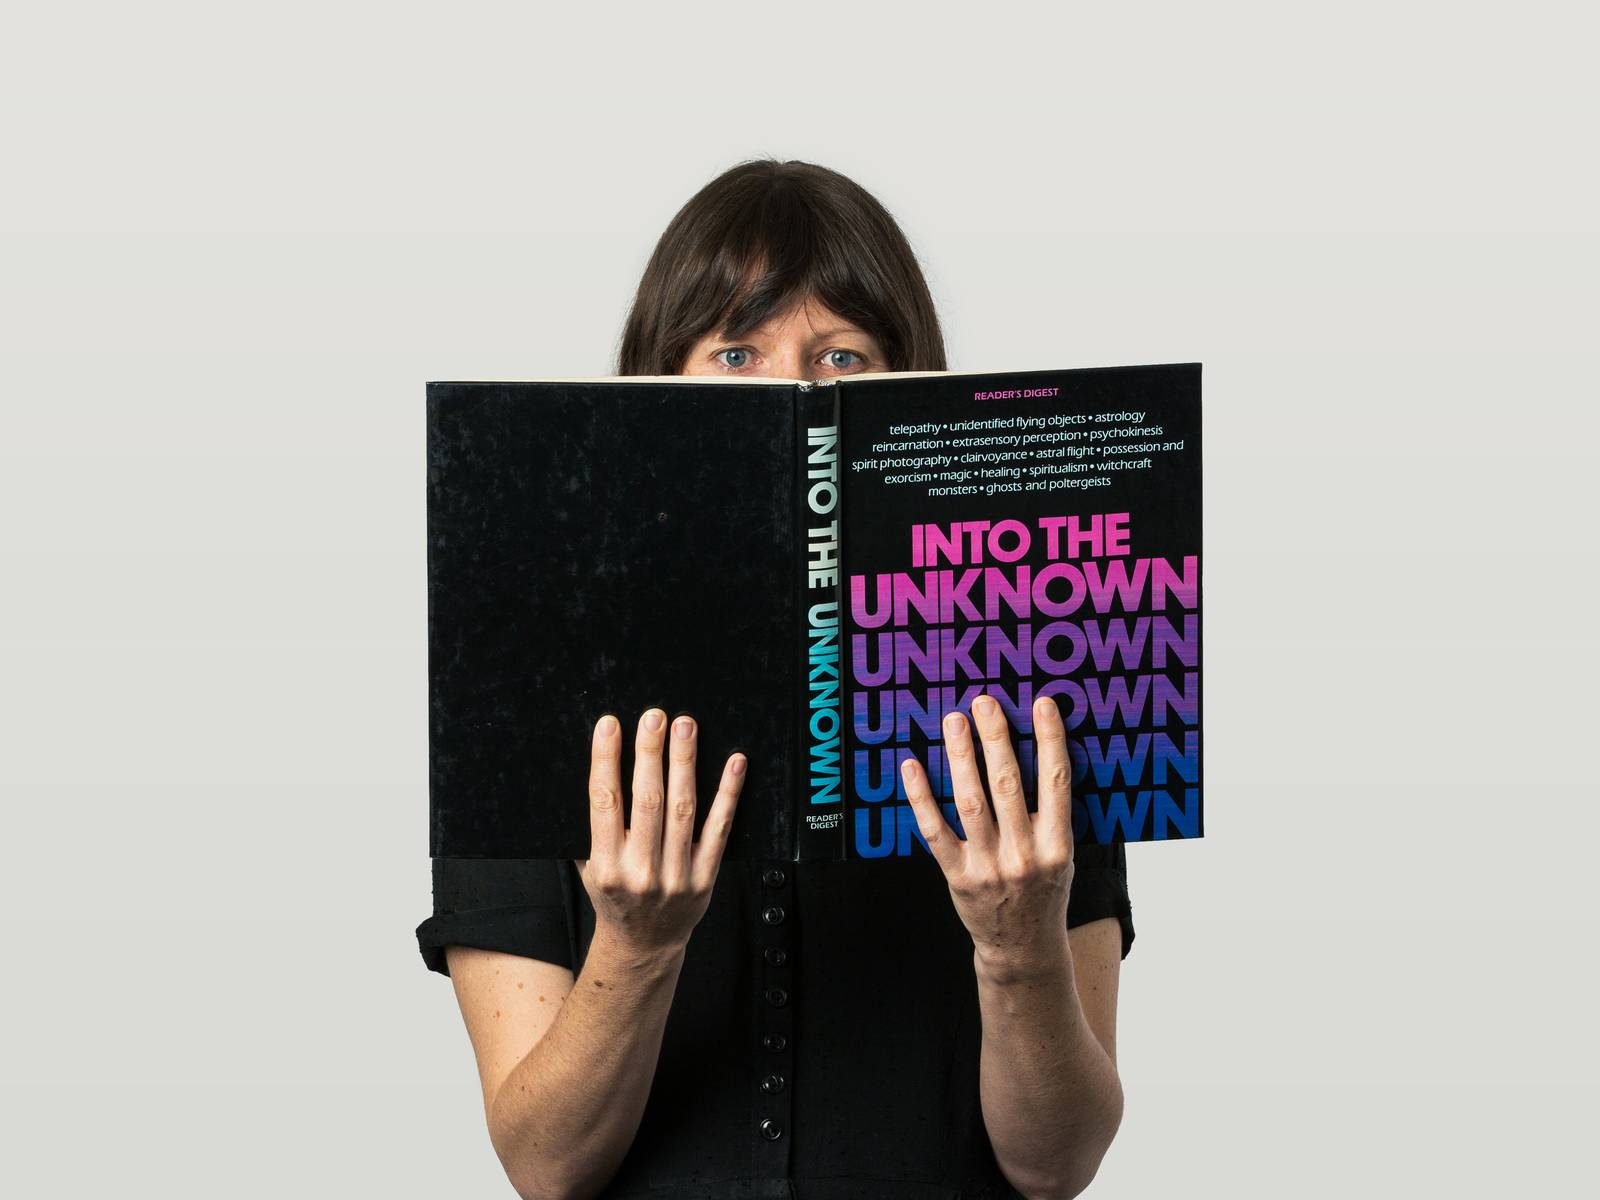 Lizy reading 'Into The Unknown' book